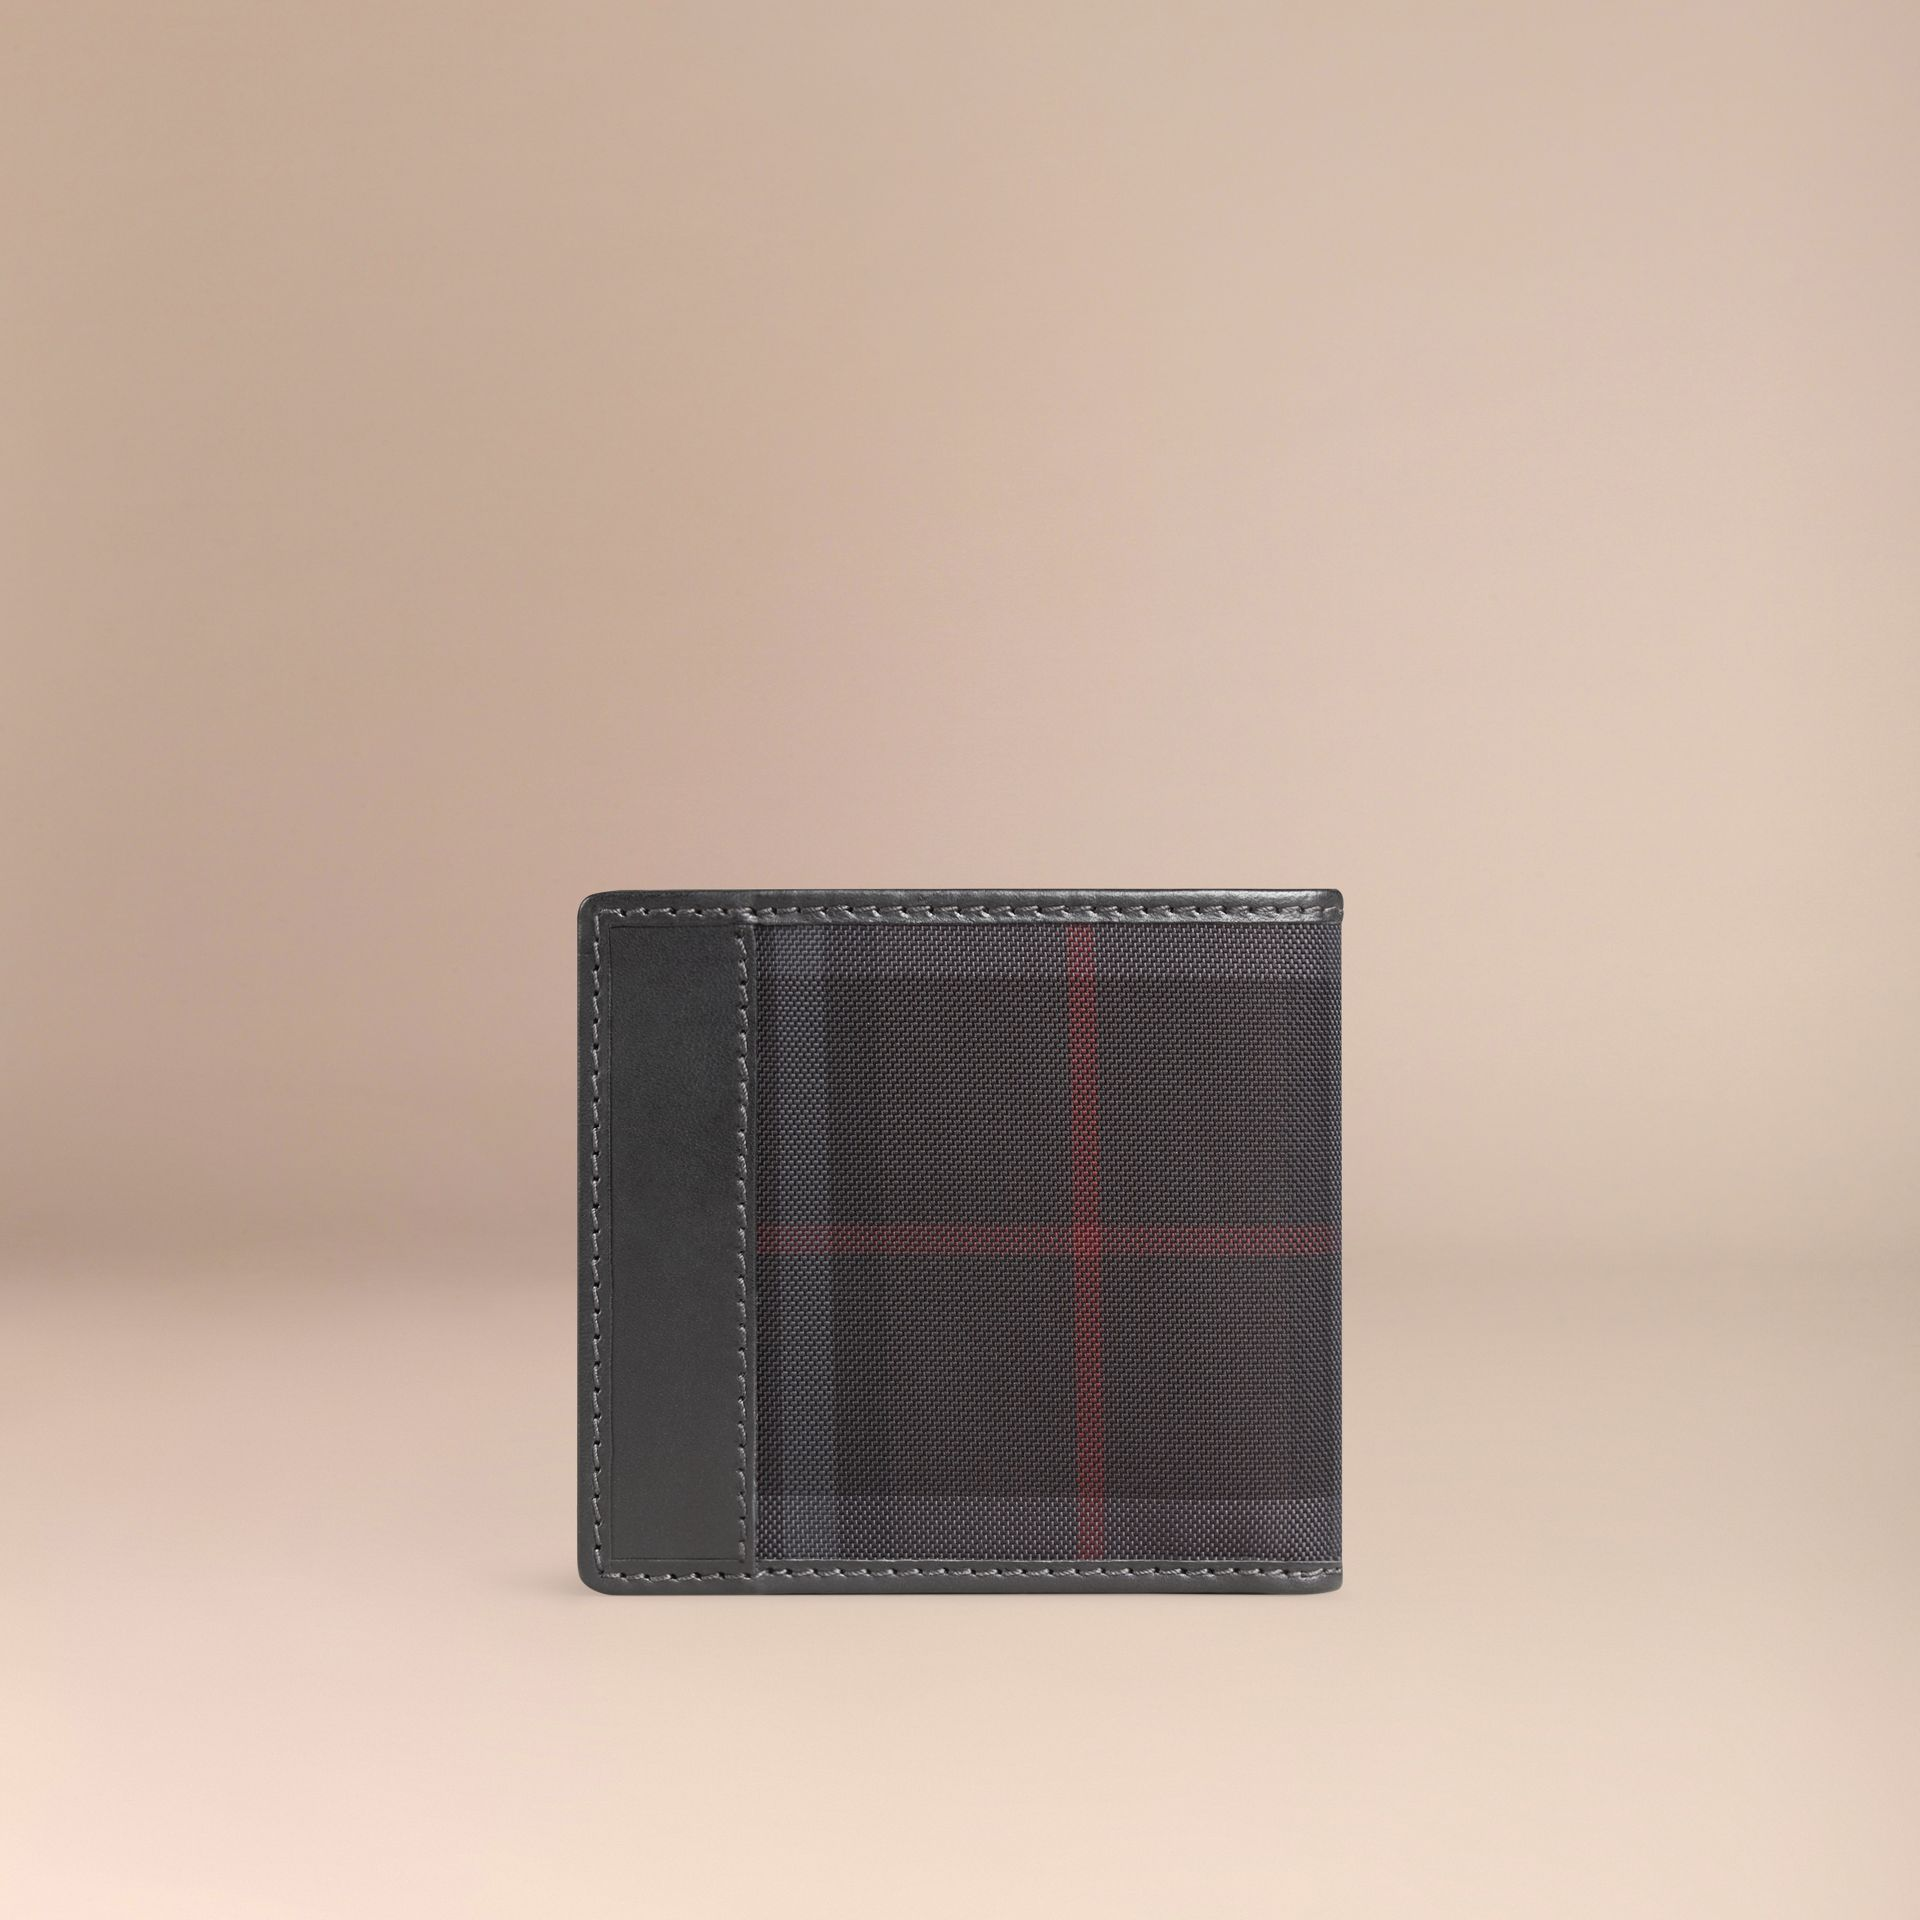 Charcoal/black Horseferry Check Folding Coin Wallet Charcoal/black - gallery image 3